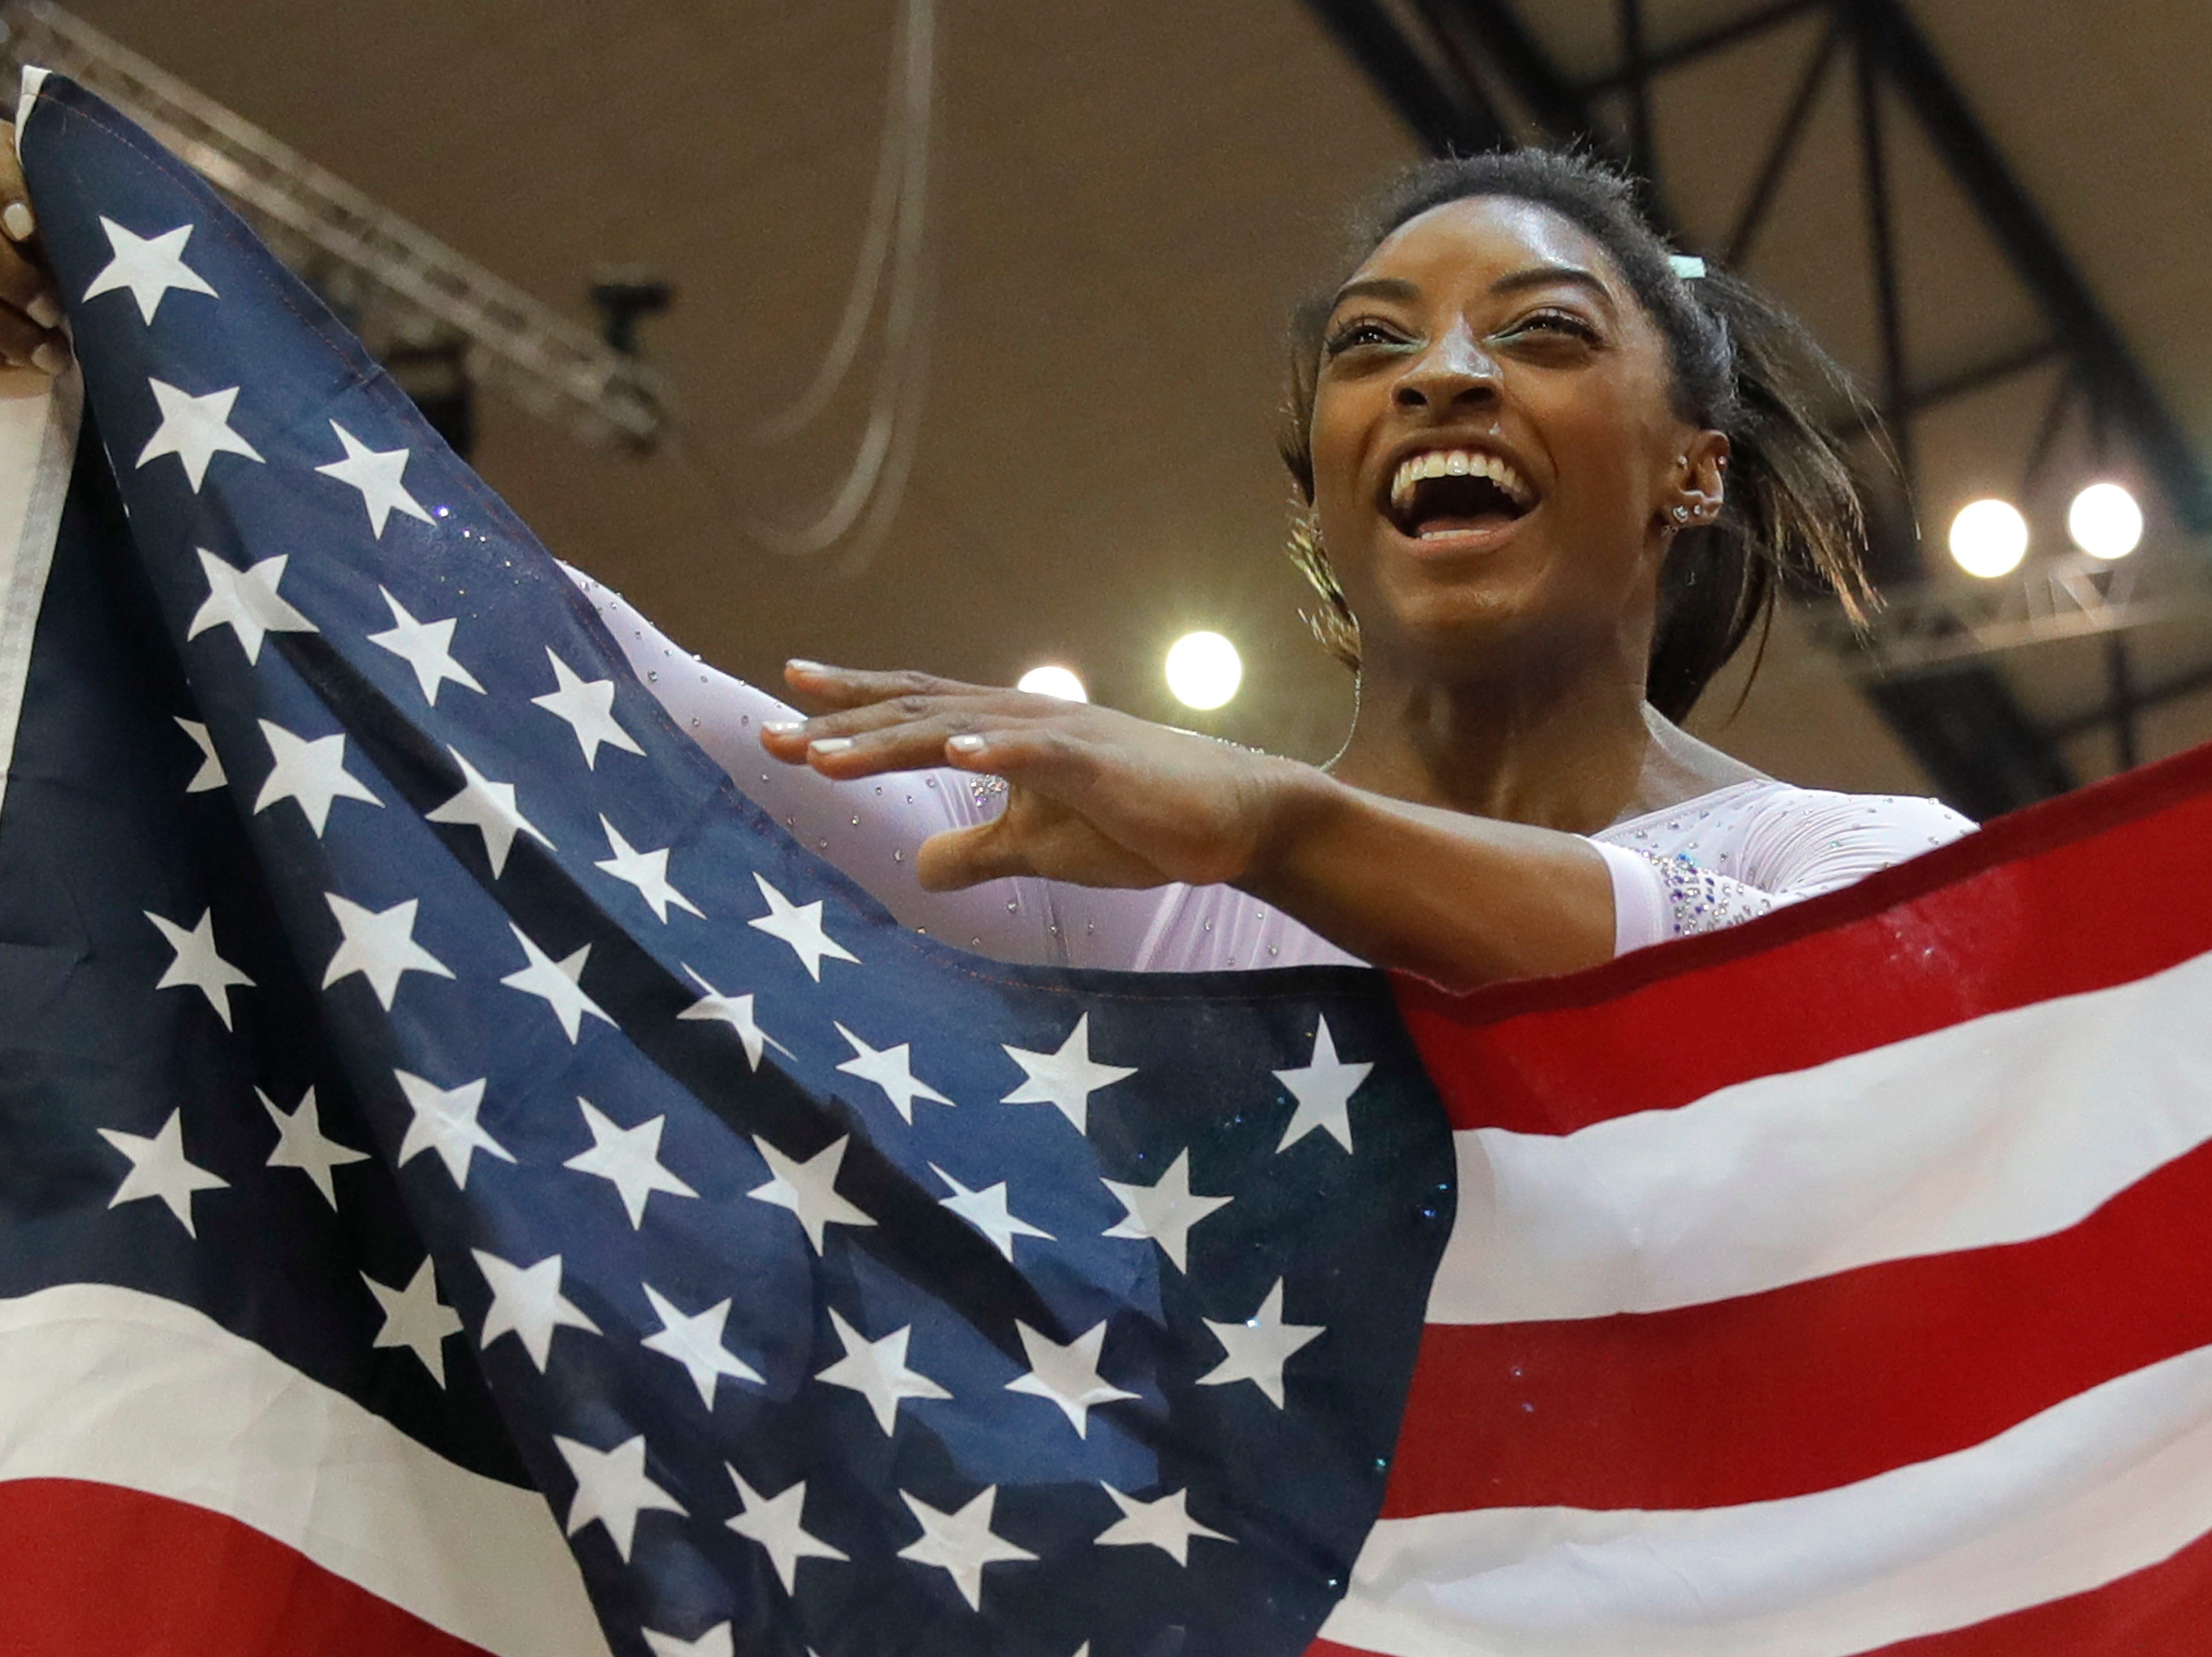 Gold medallist and four-times All-Around world champion Simone Biles of the U.S. celebrates with the national flag after the Women's All-Around Final of the Gymnastics World Chamionships at the Aspire Dome in Doha, Qatar, Nov. 1, 2018.